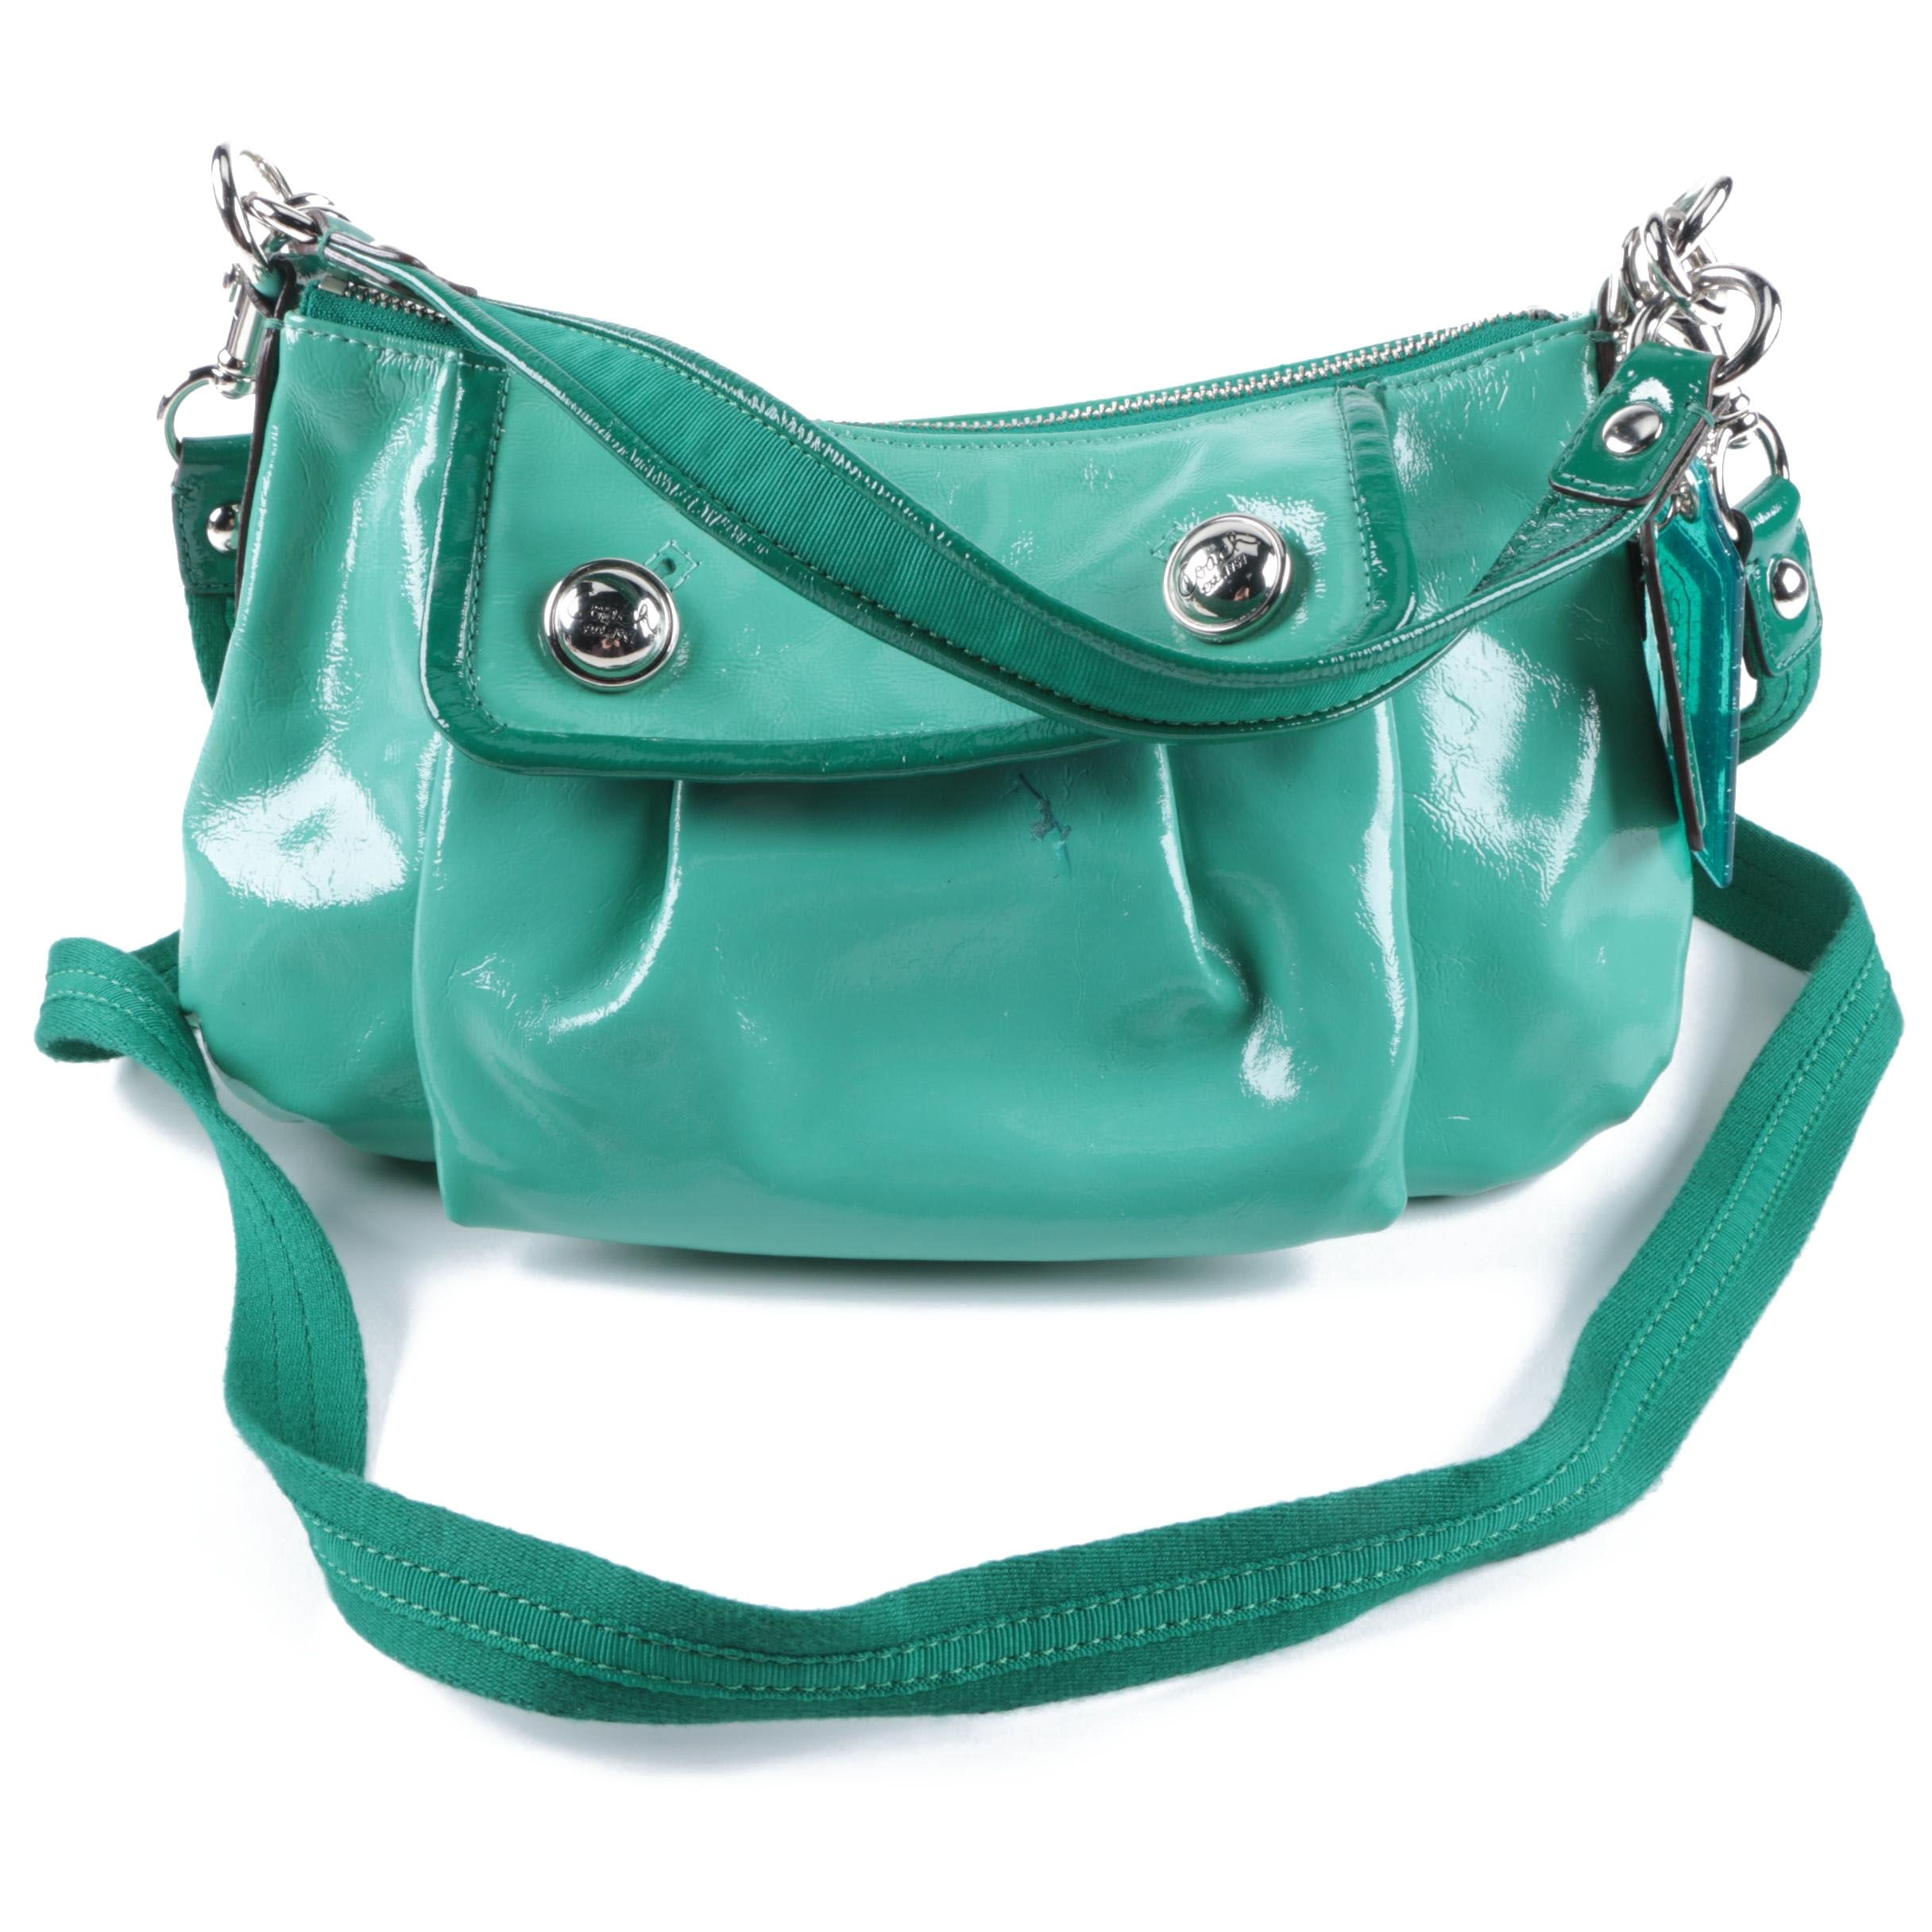 Coach Green Patent Leather Groovy Bag